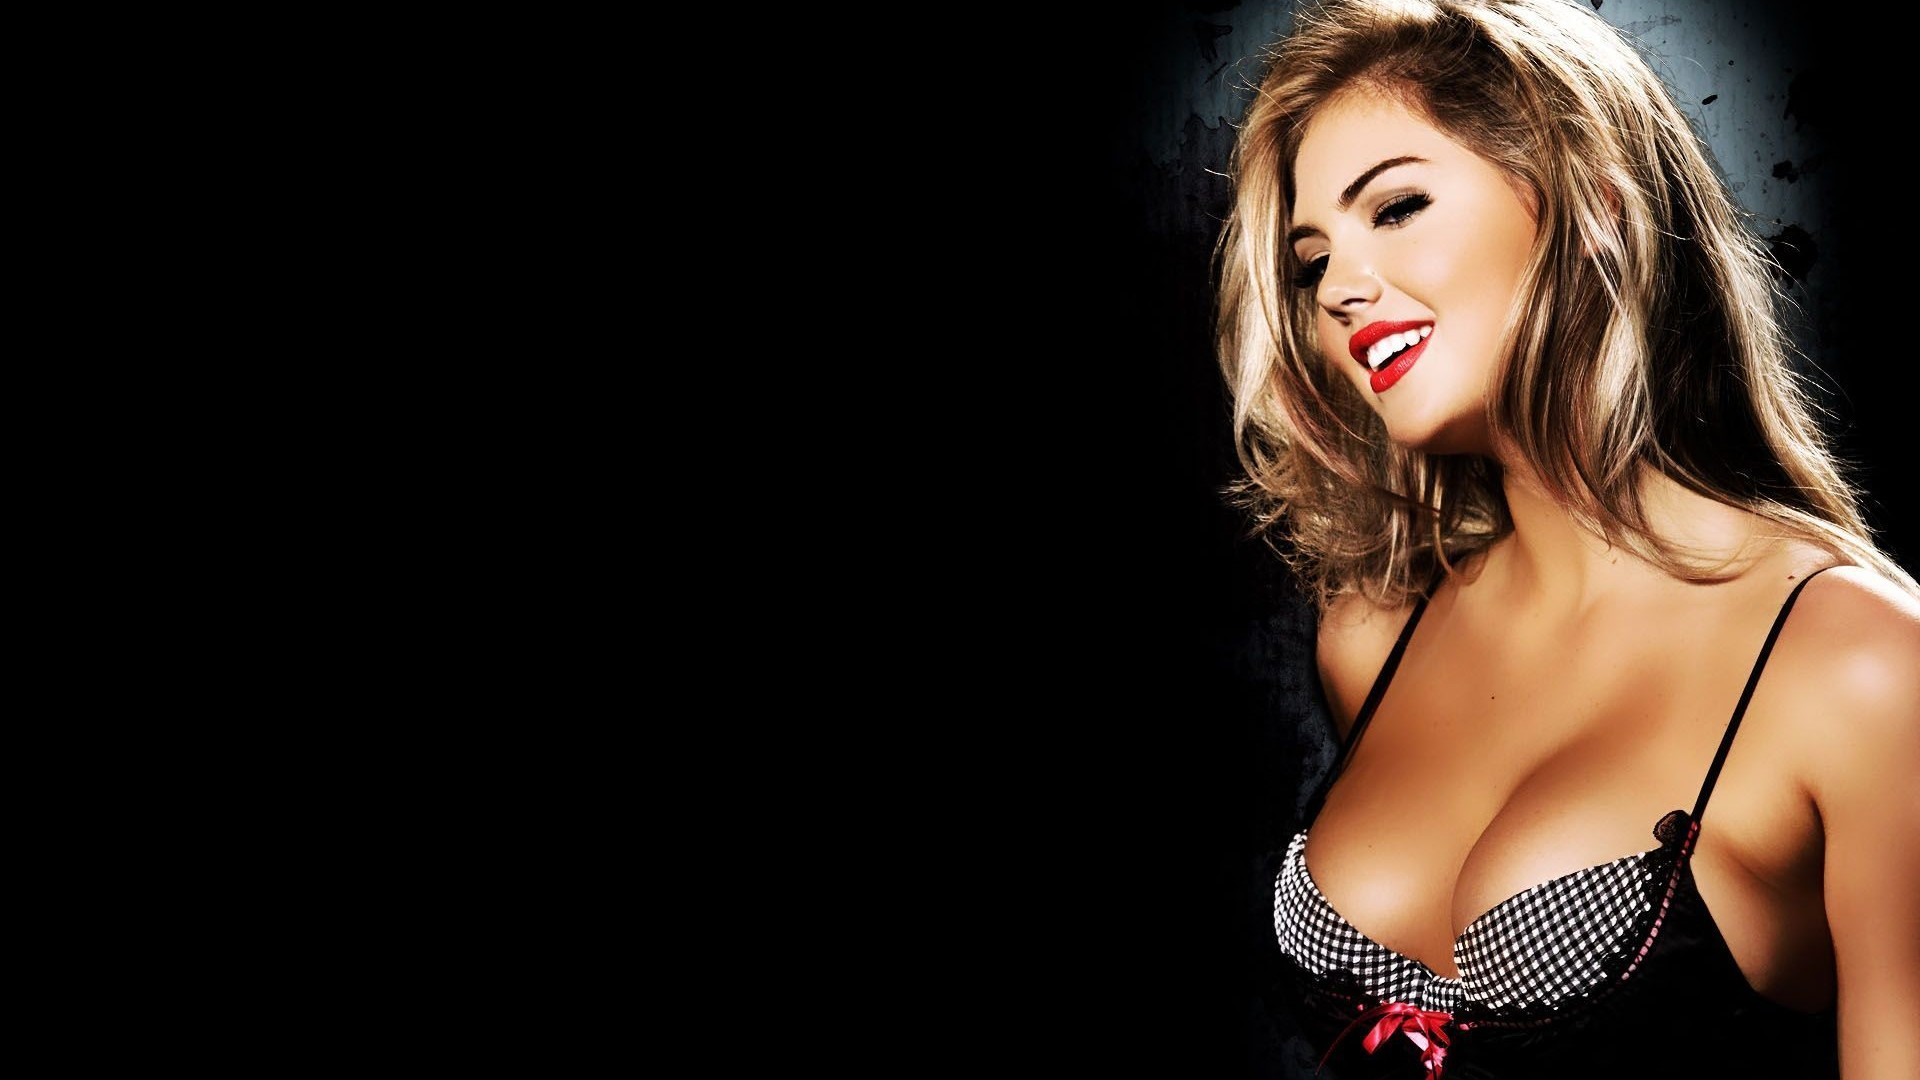 Kate Upton Wallpapers, Pictures, Images